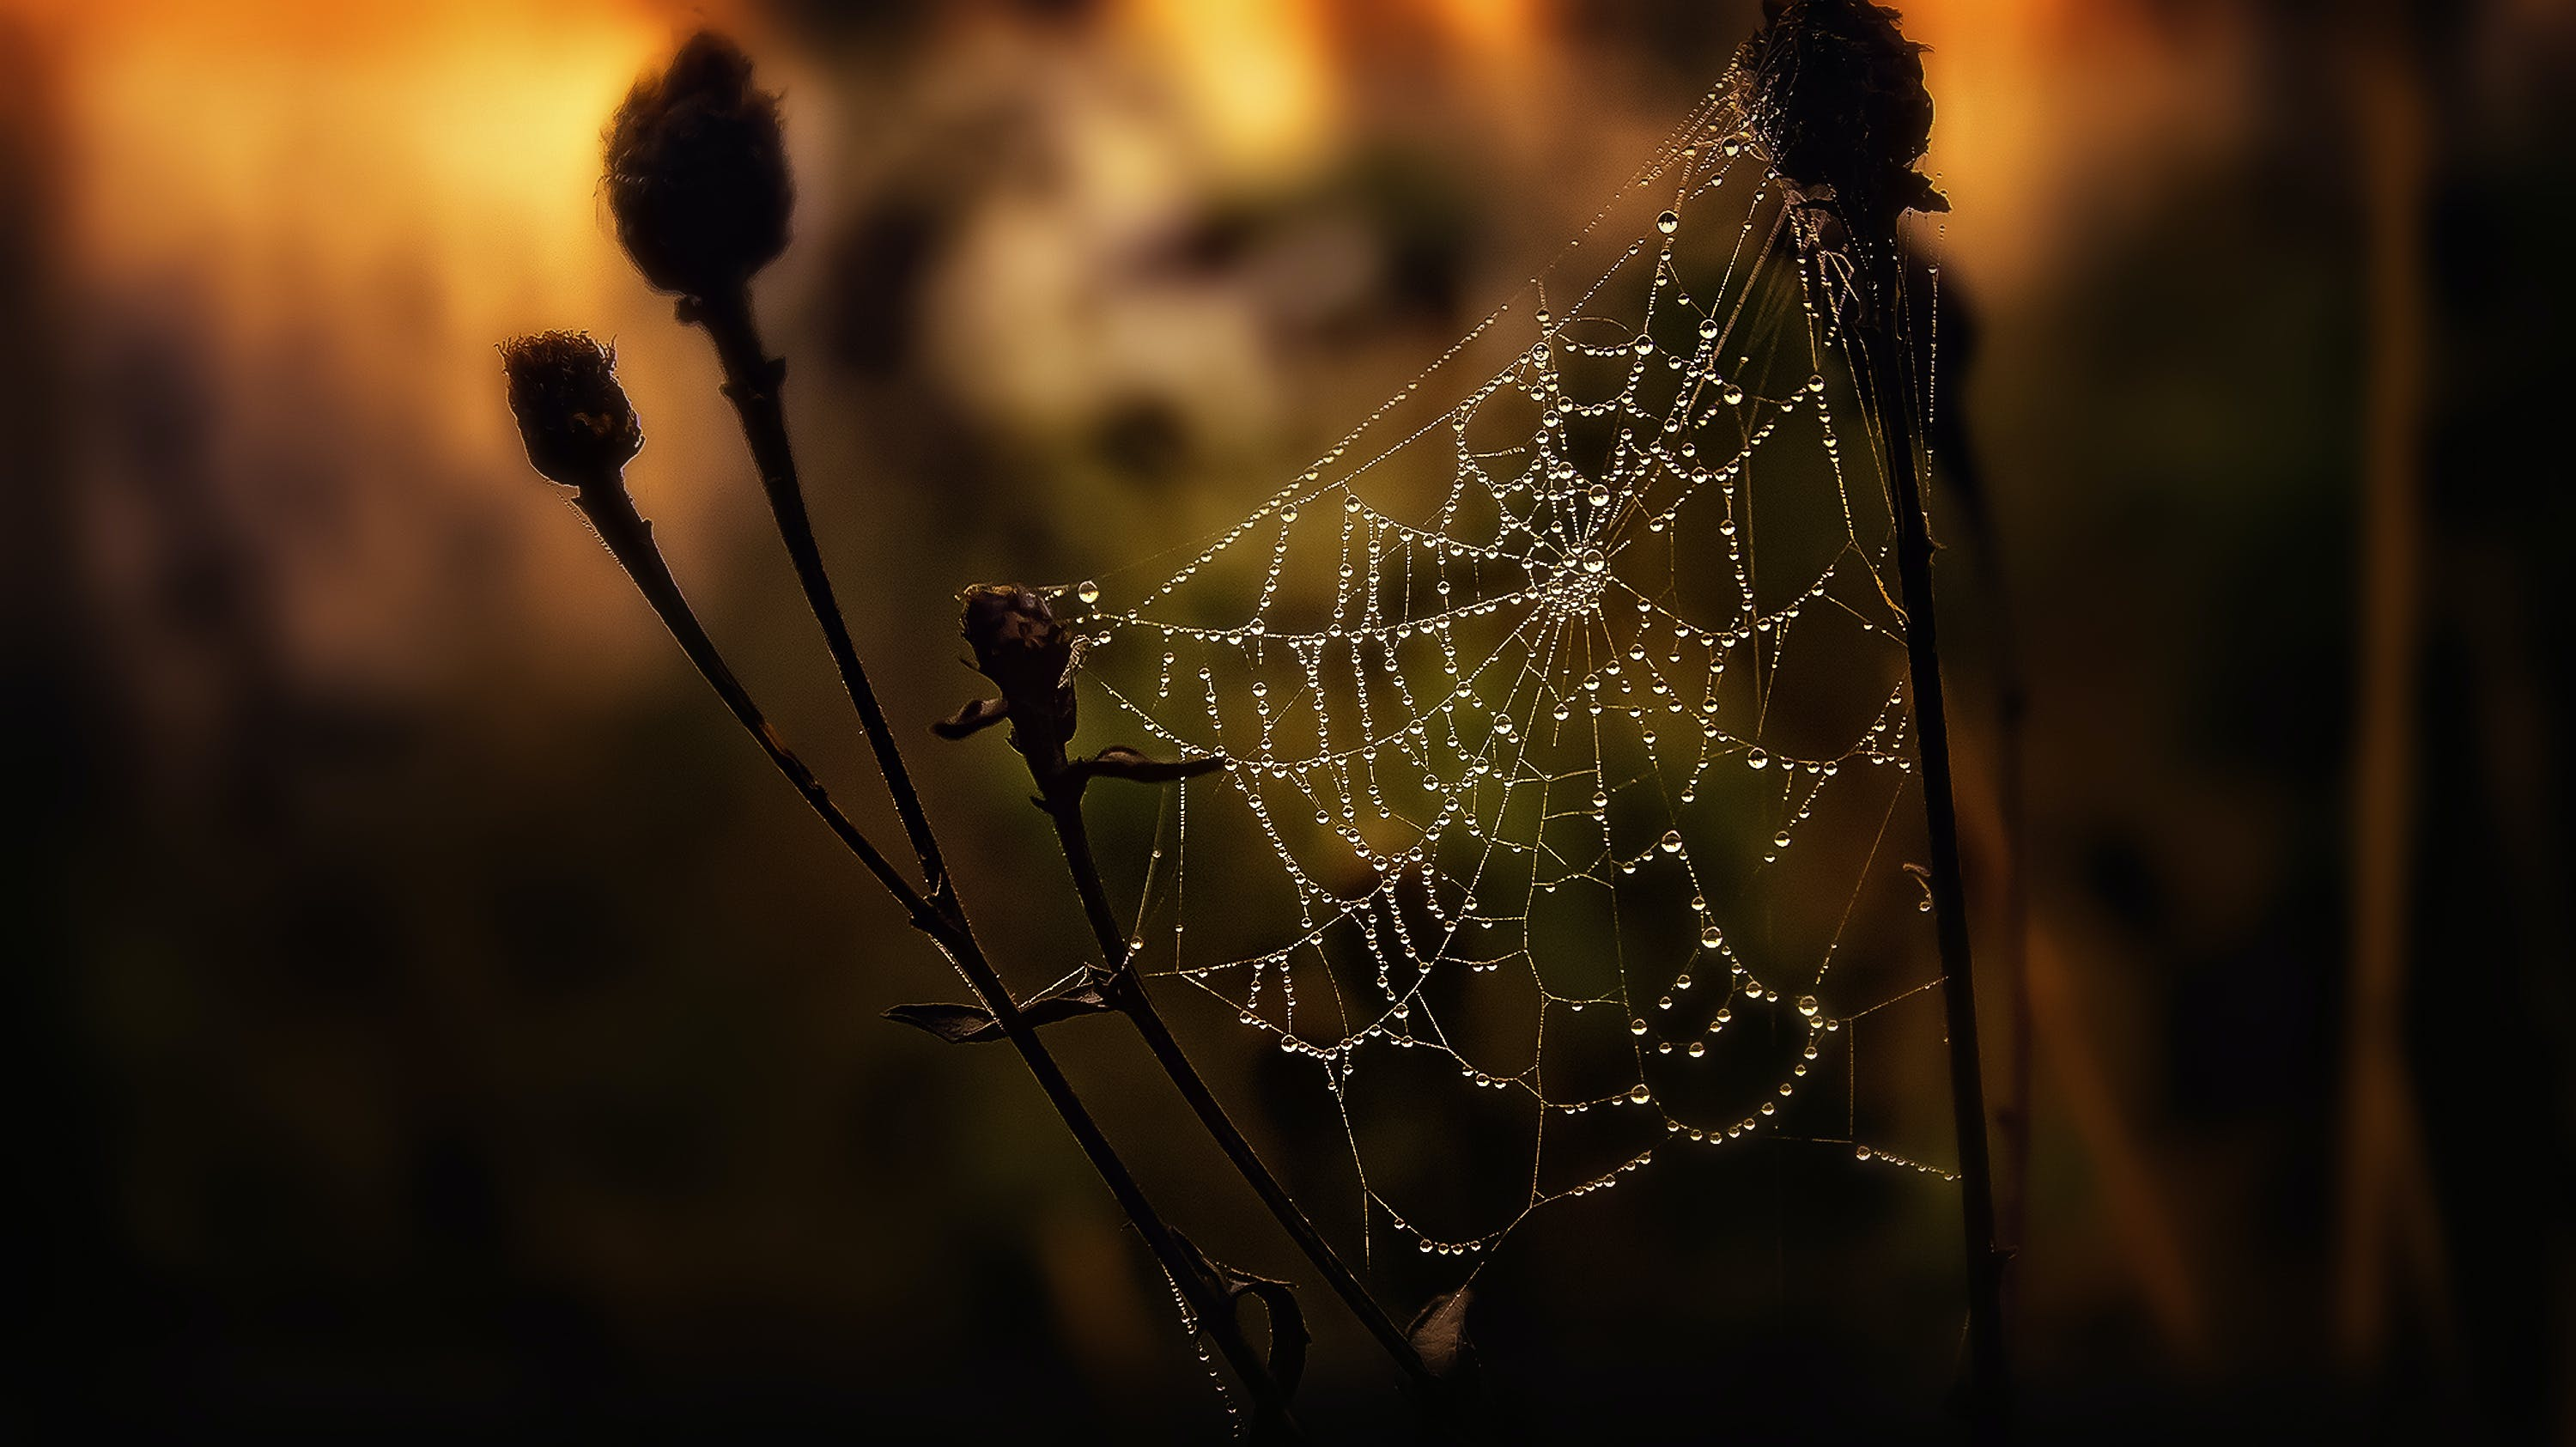 Selective Focus Photography of Spider Web